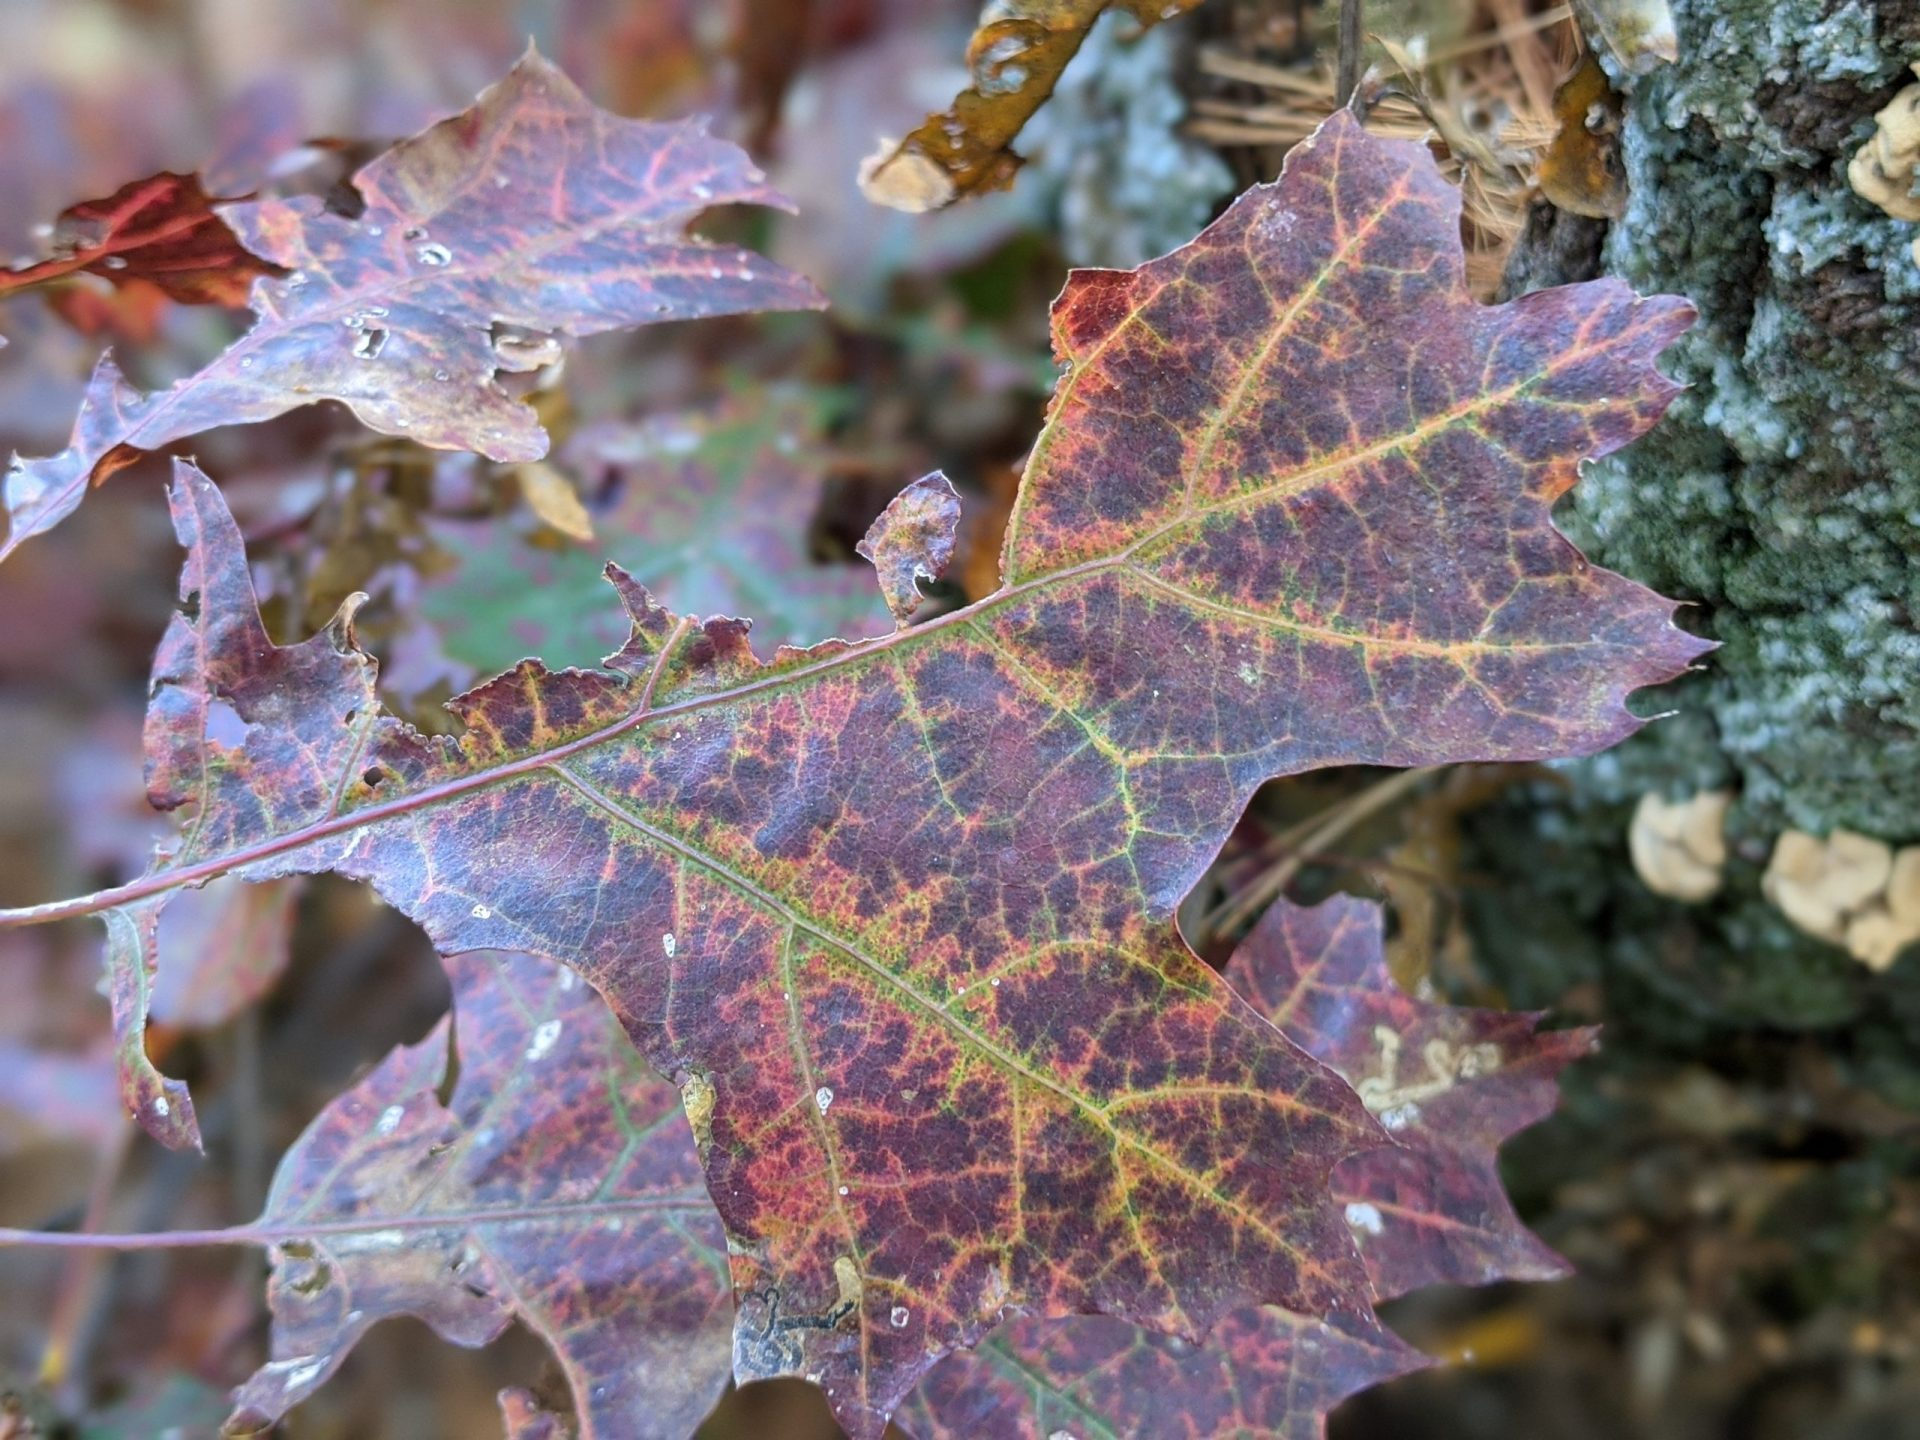 Fall leaf - purple with yellow veins - October 2020